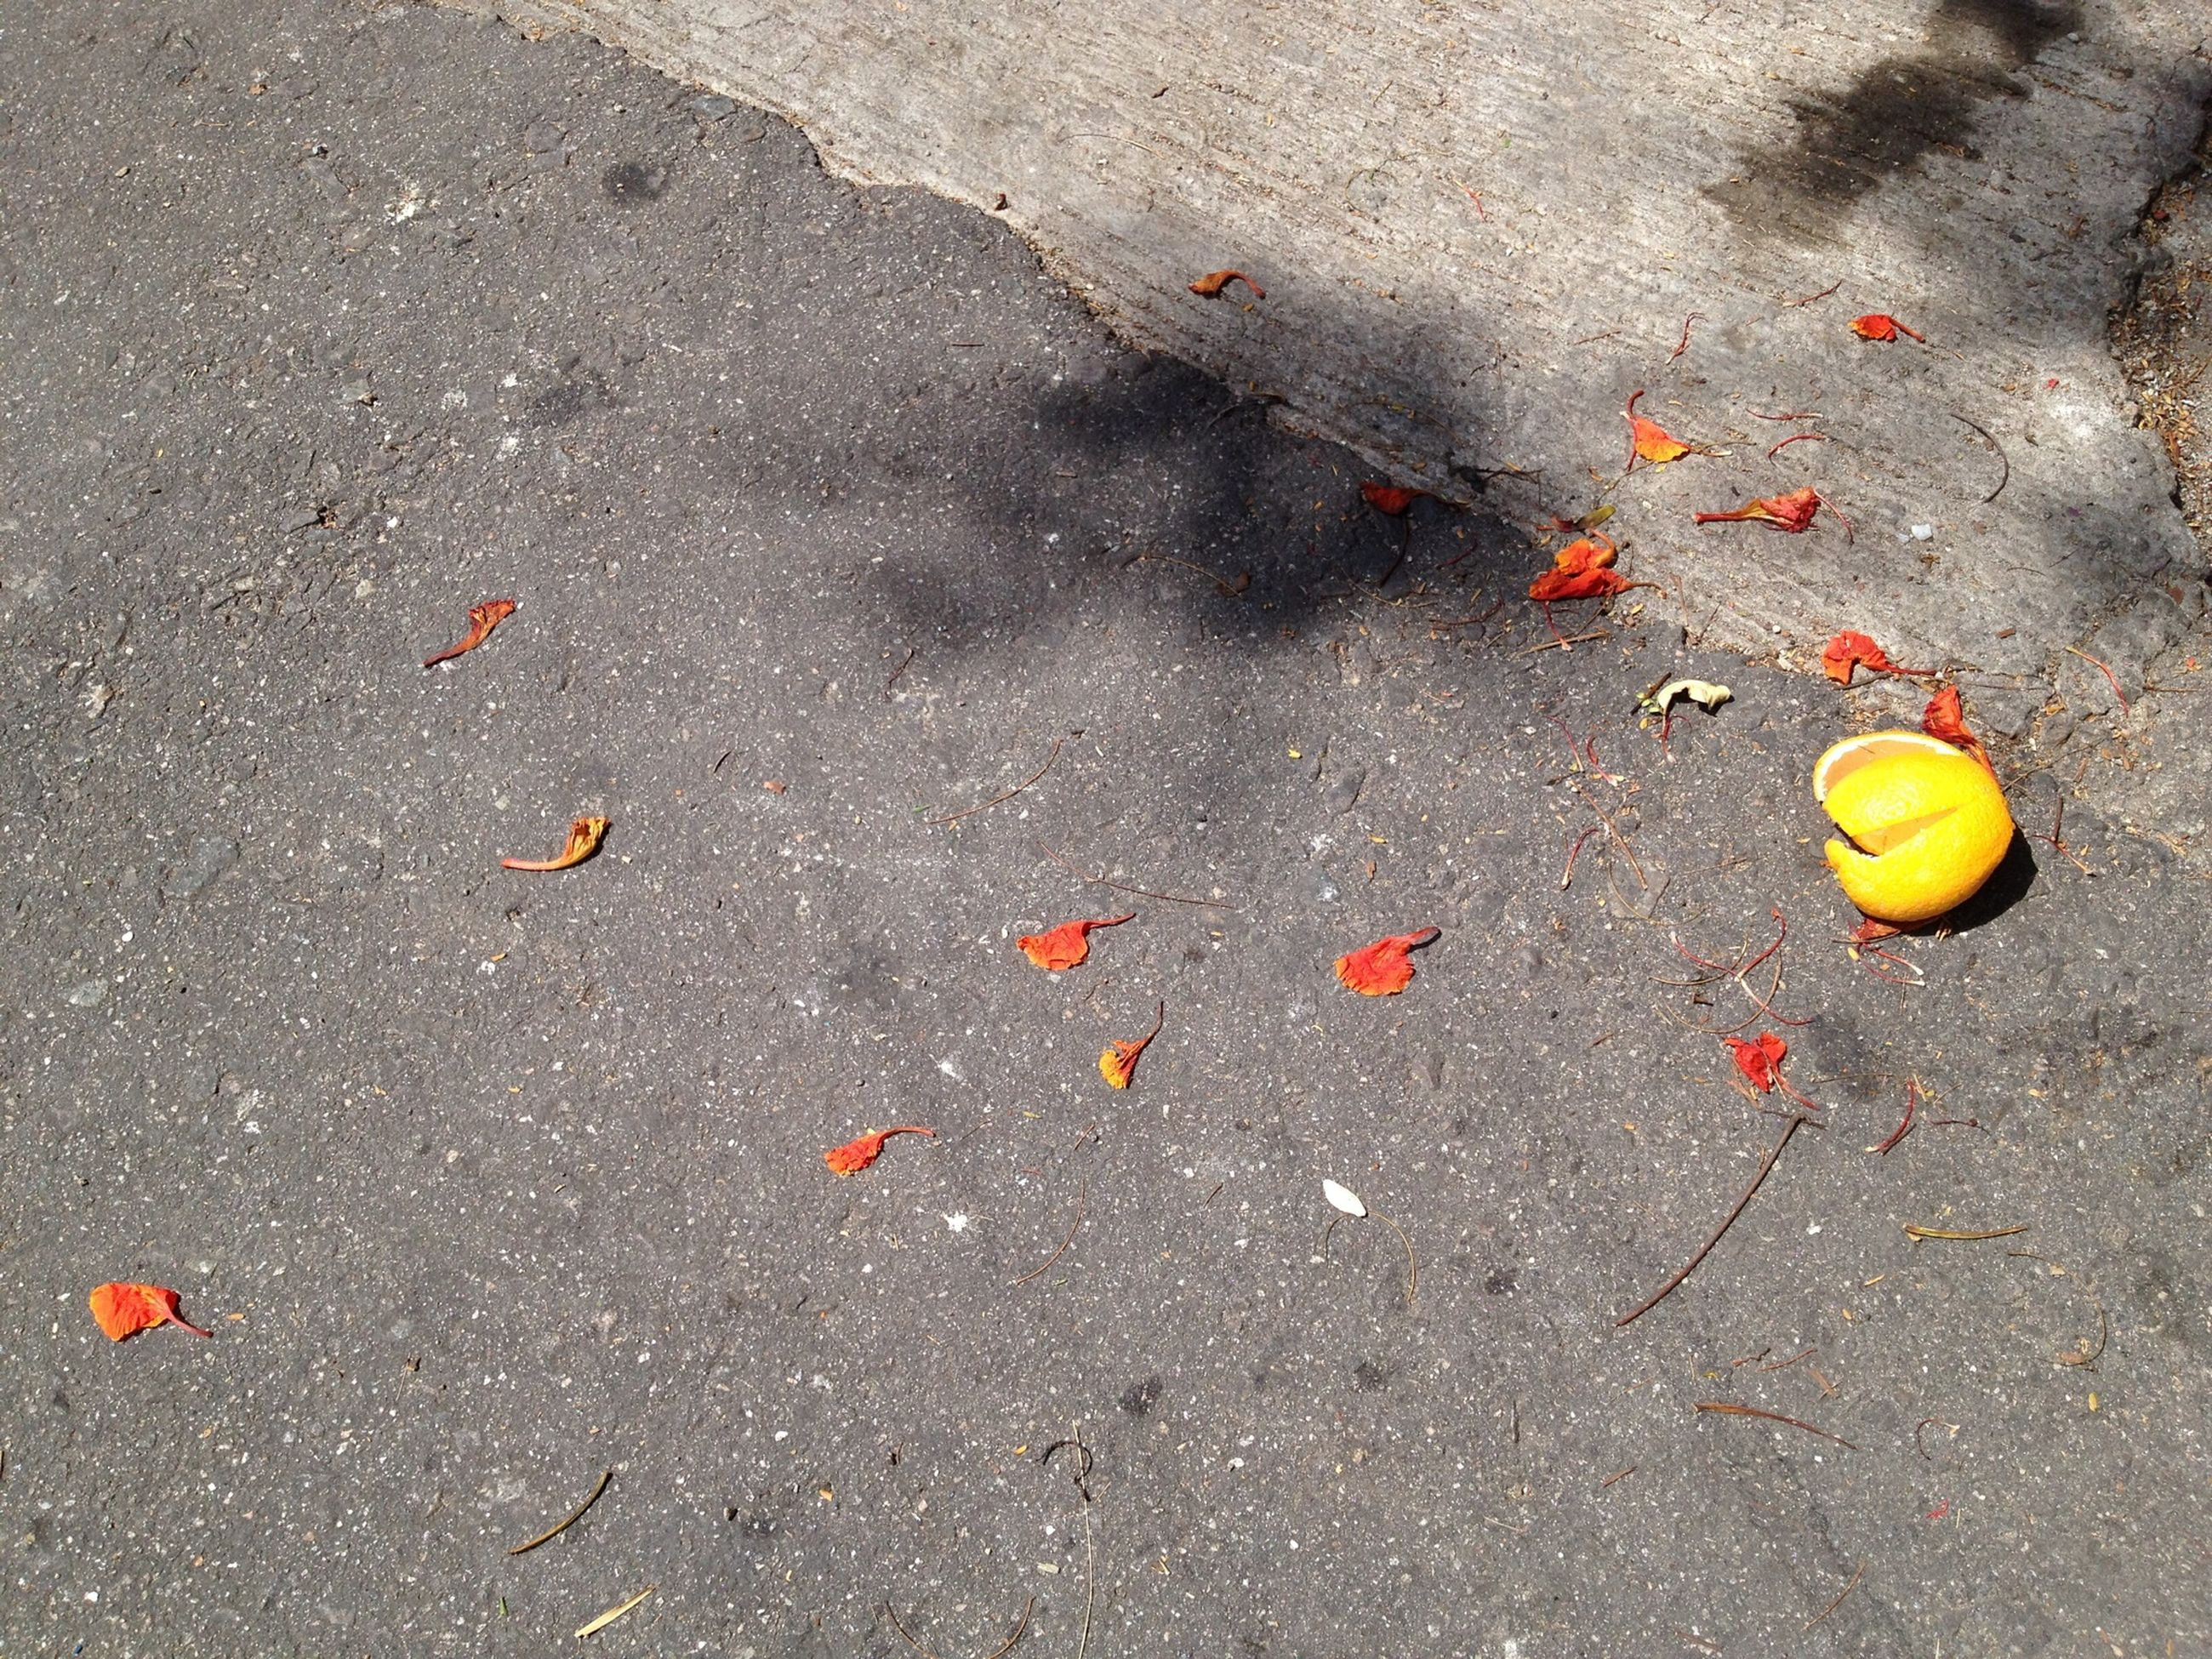 high angle view, street, asphalt, road, leaf, wet, ground, day, outdoors, autumn, fallen, red, directly above, puddle, sidewalk, no people, change, nature, elevated view, sand